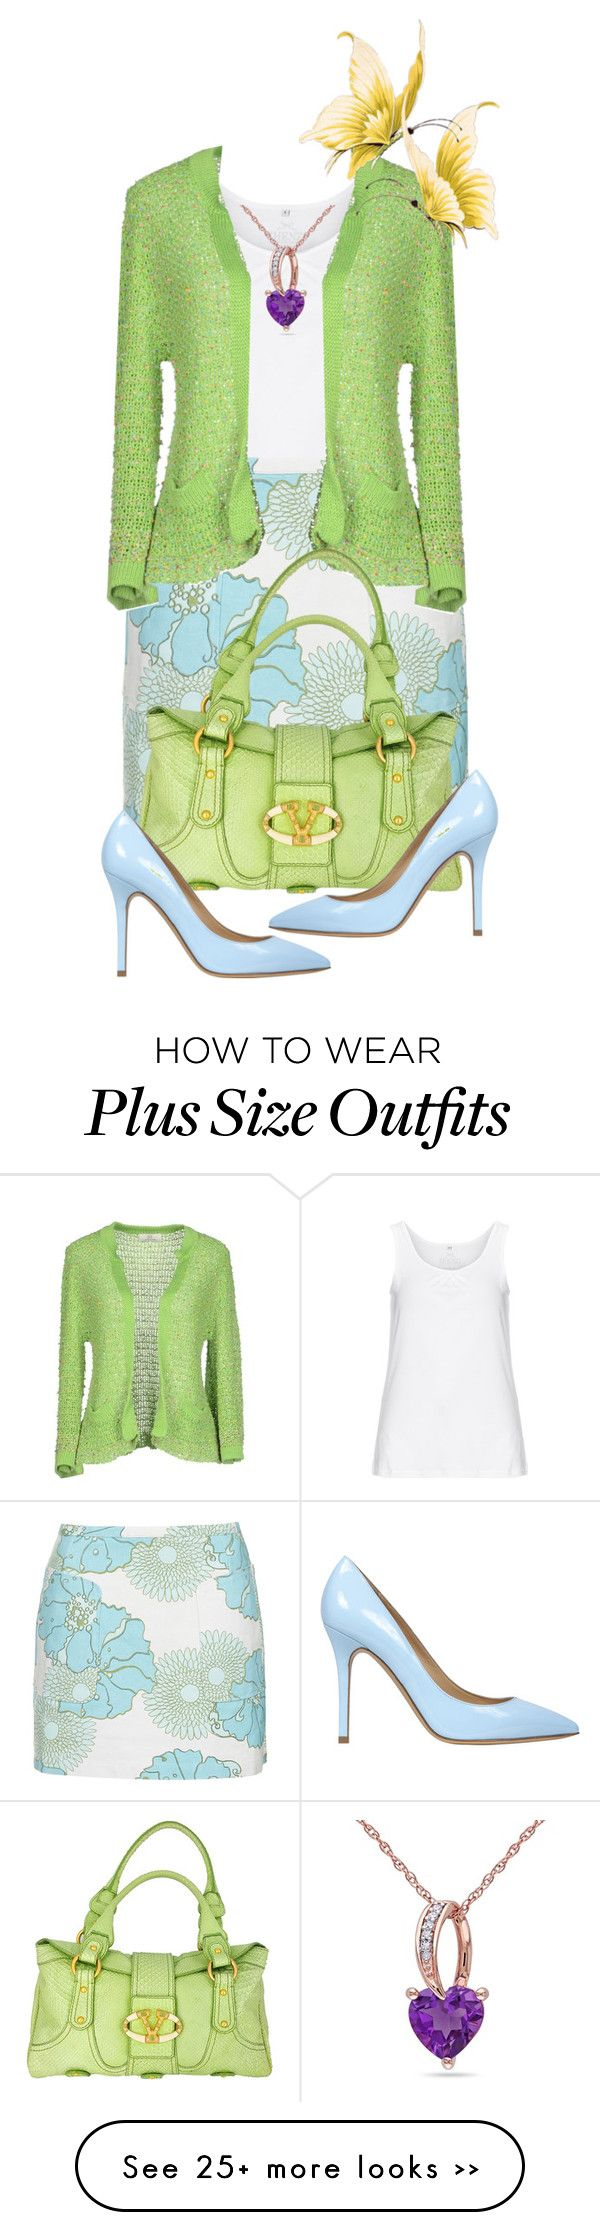 """Spring Daze"" by rosiepeter on Polyvore featuring Zhenzi, Topshop, Swap Inside, Semilla and Ice"